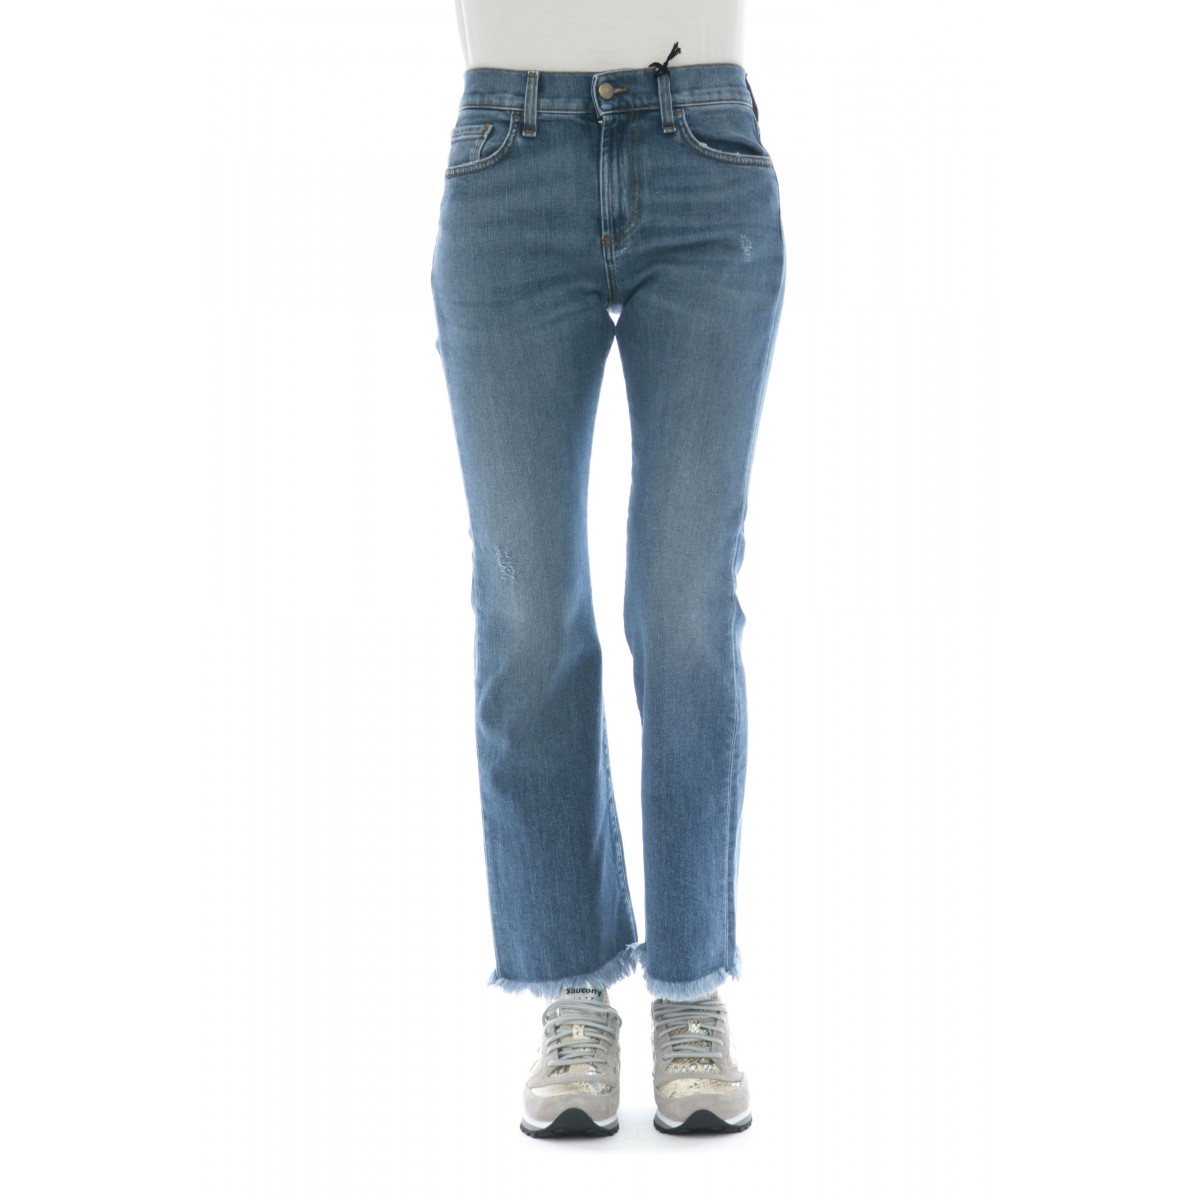 Jeans - Zandra sue slim boot cut